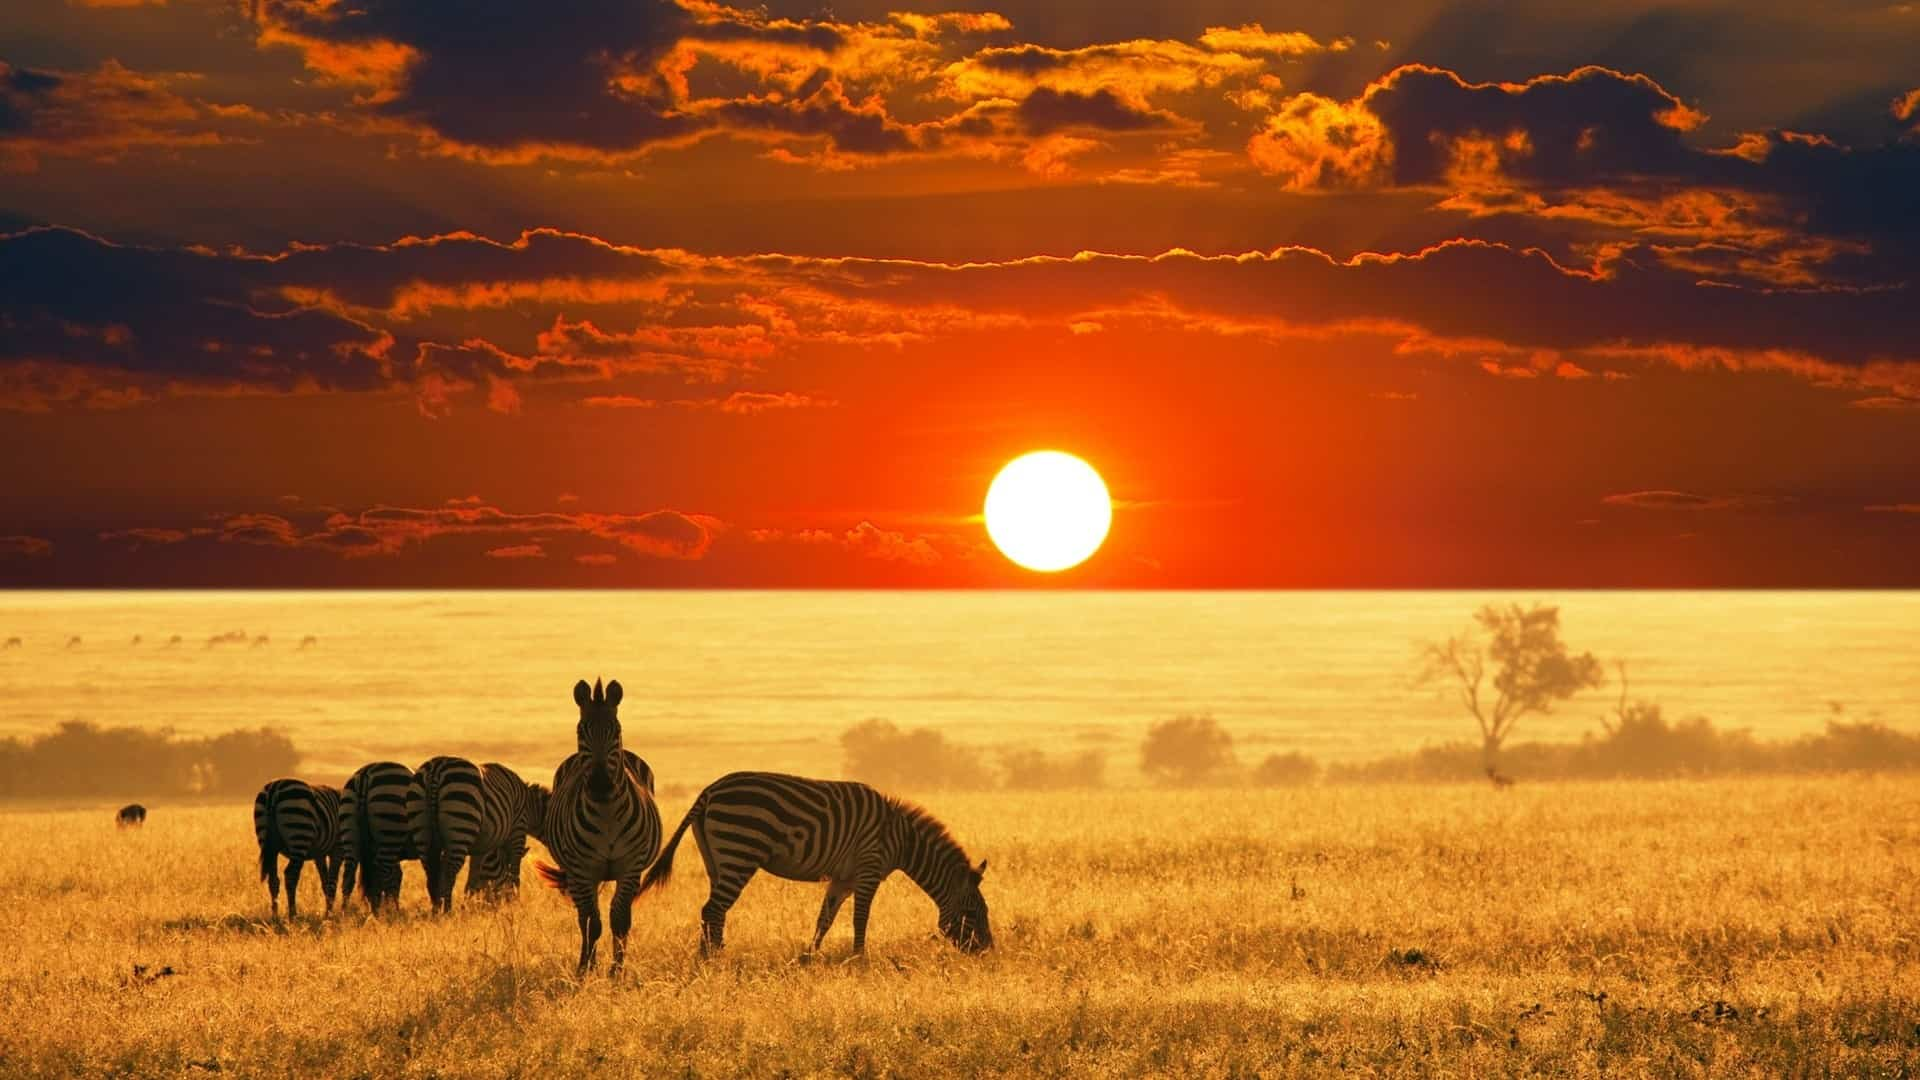 Exclusive-Escapes-Africa-Safari-Uganda-Safari-Travel-to-Africa-Map-of-Africa-Kampala-Exclusive-Luxury-Travel-Magazine-Beverly-Hills-Magazine-1